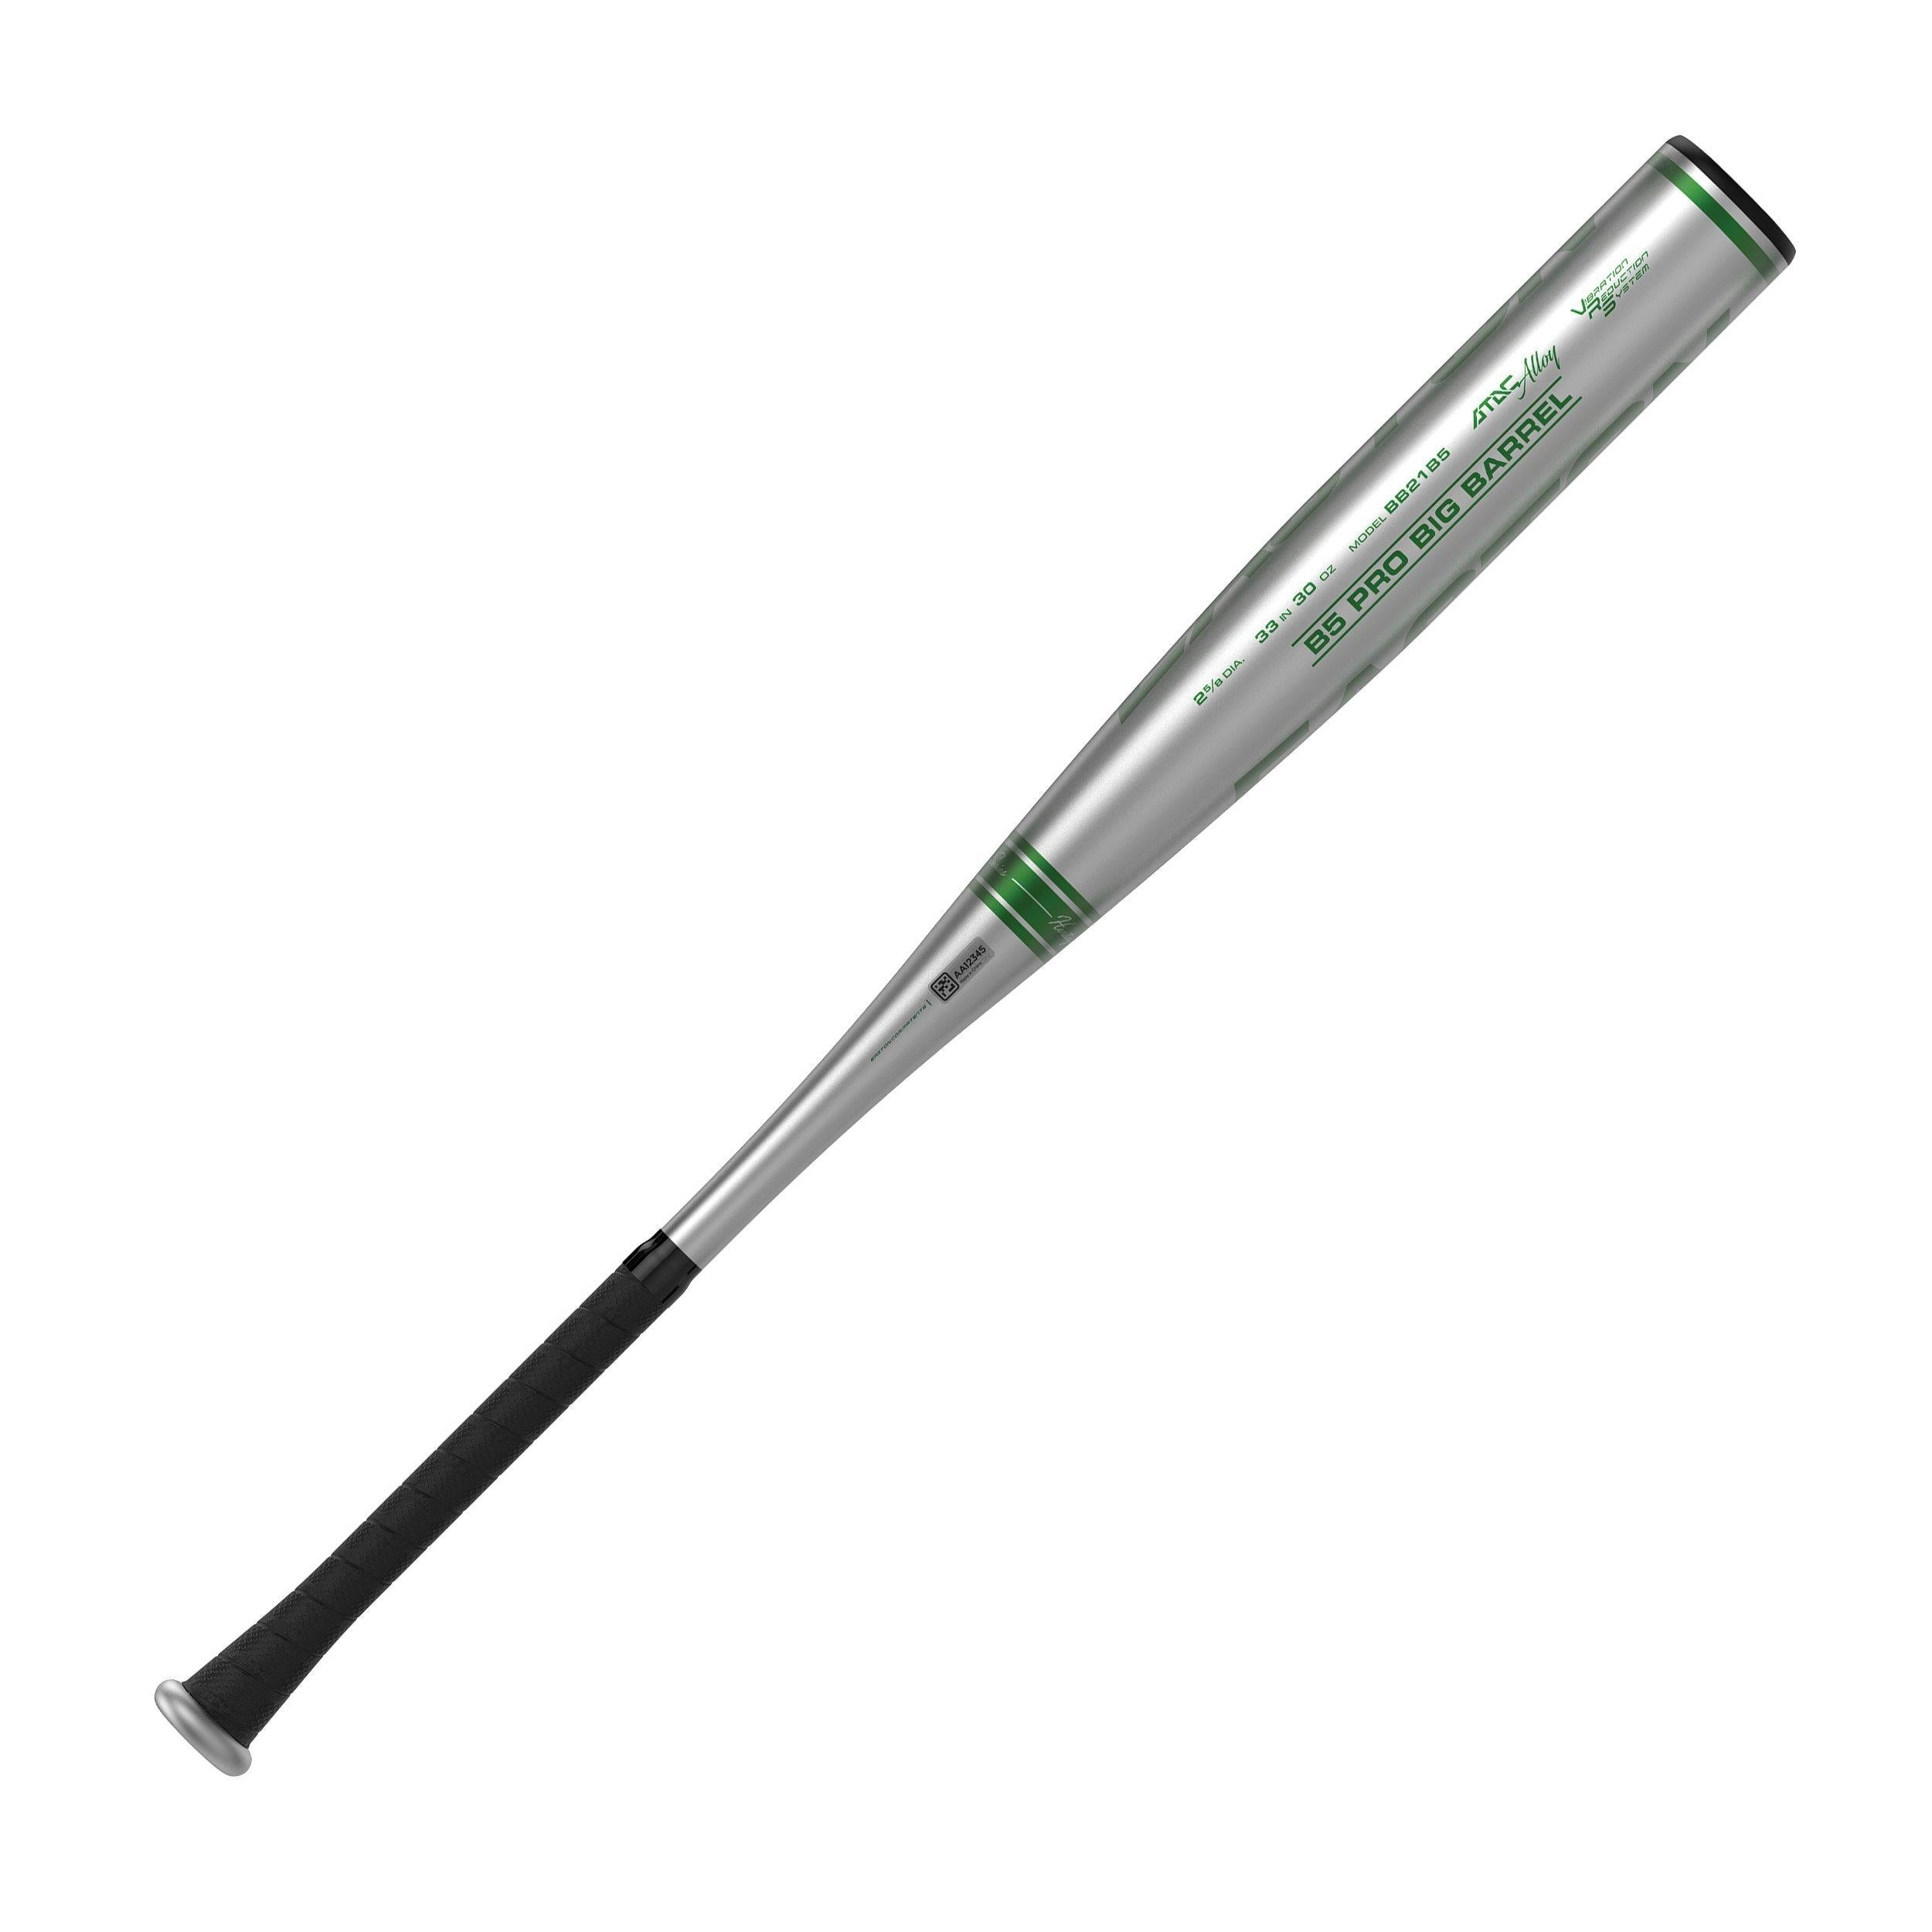 BÂTON DE BASEBALL B5 PRO BIG BARREL BBCOR BB21B5 (-3)